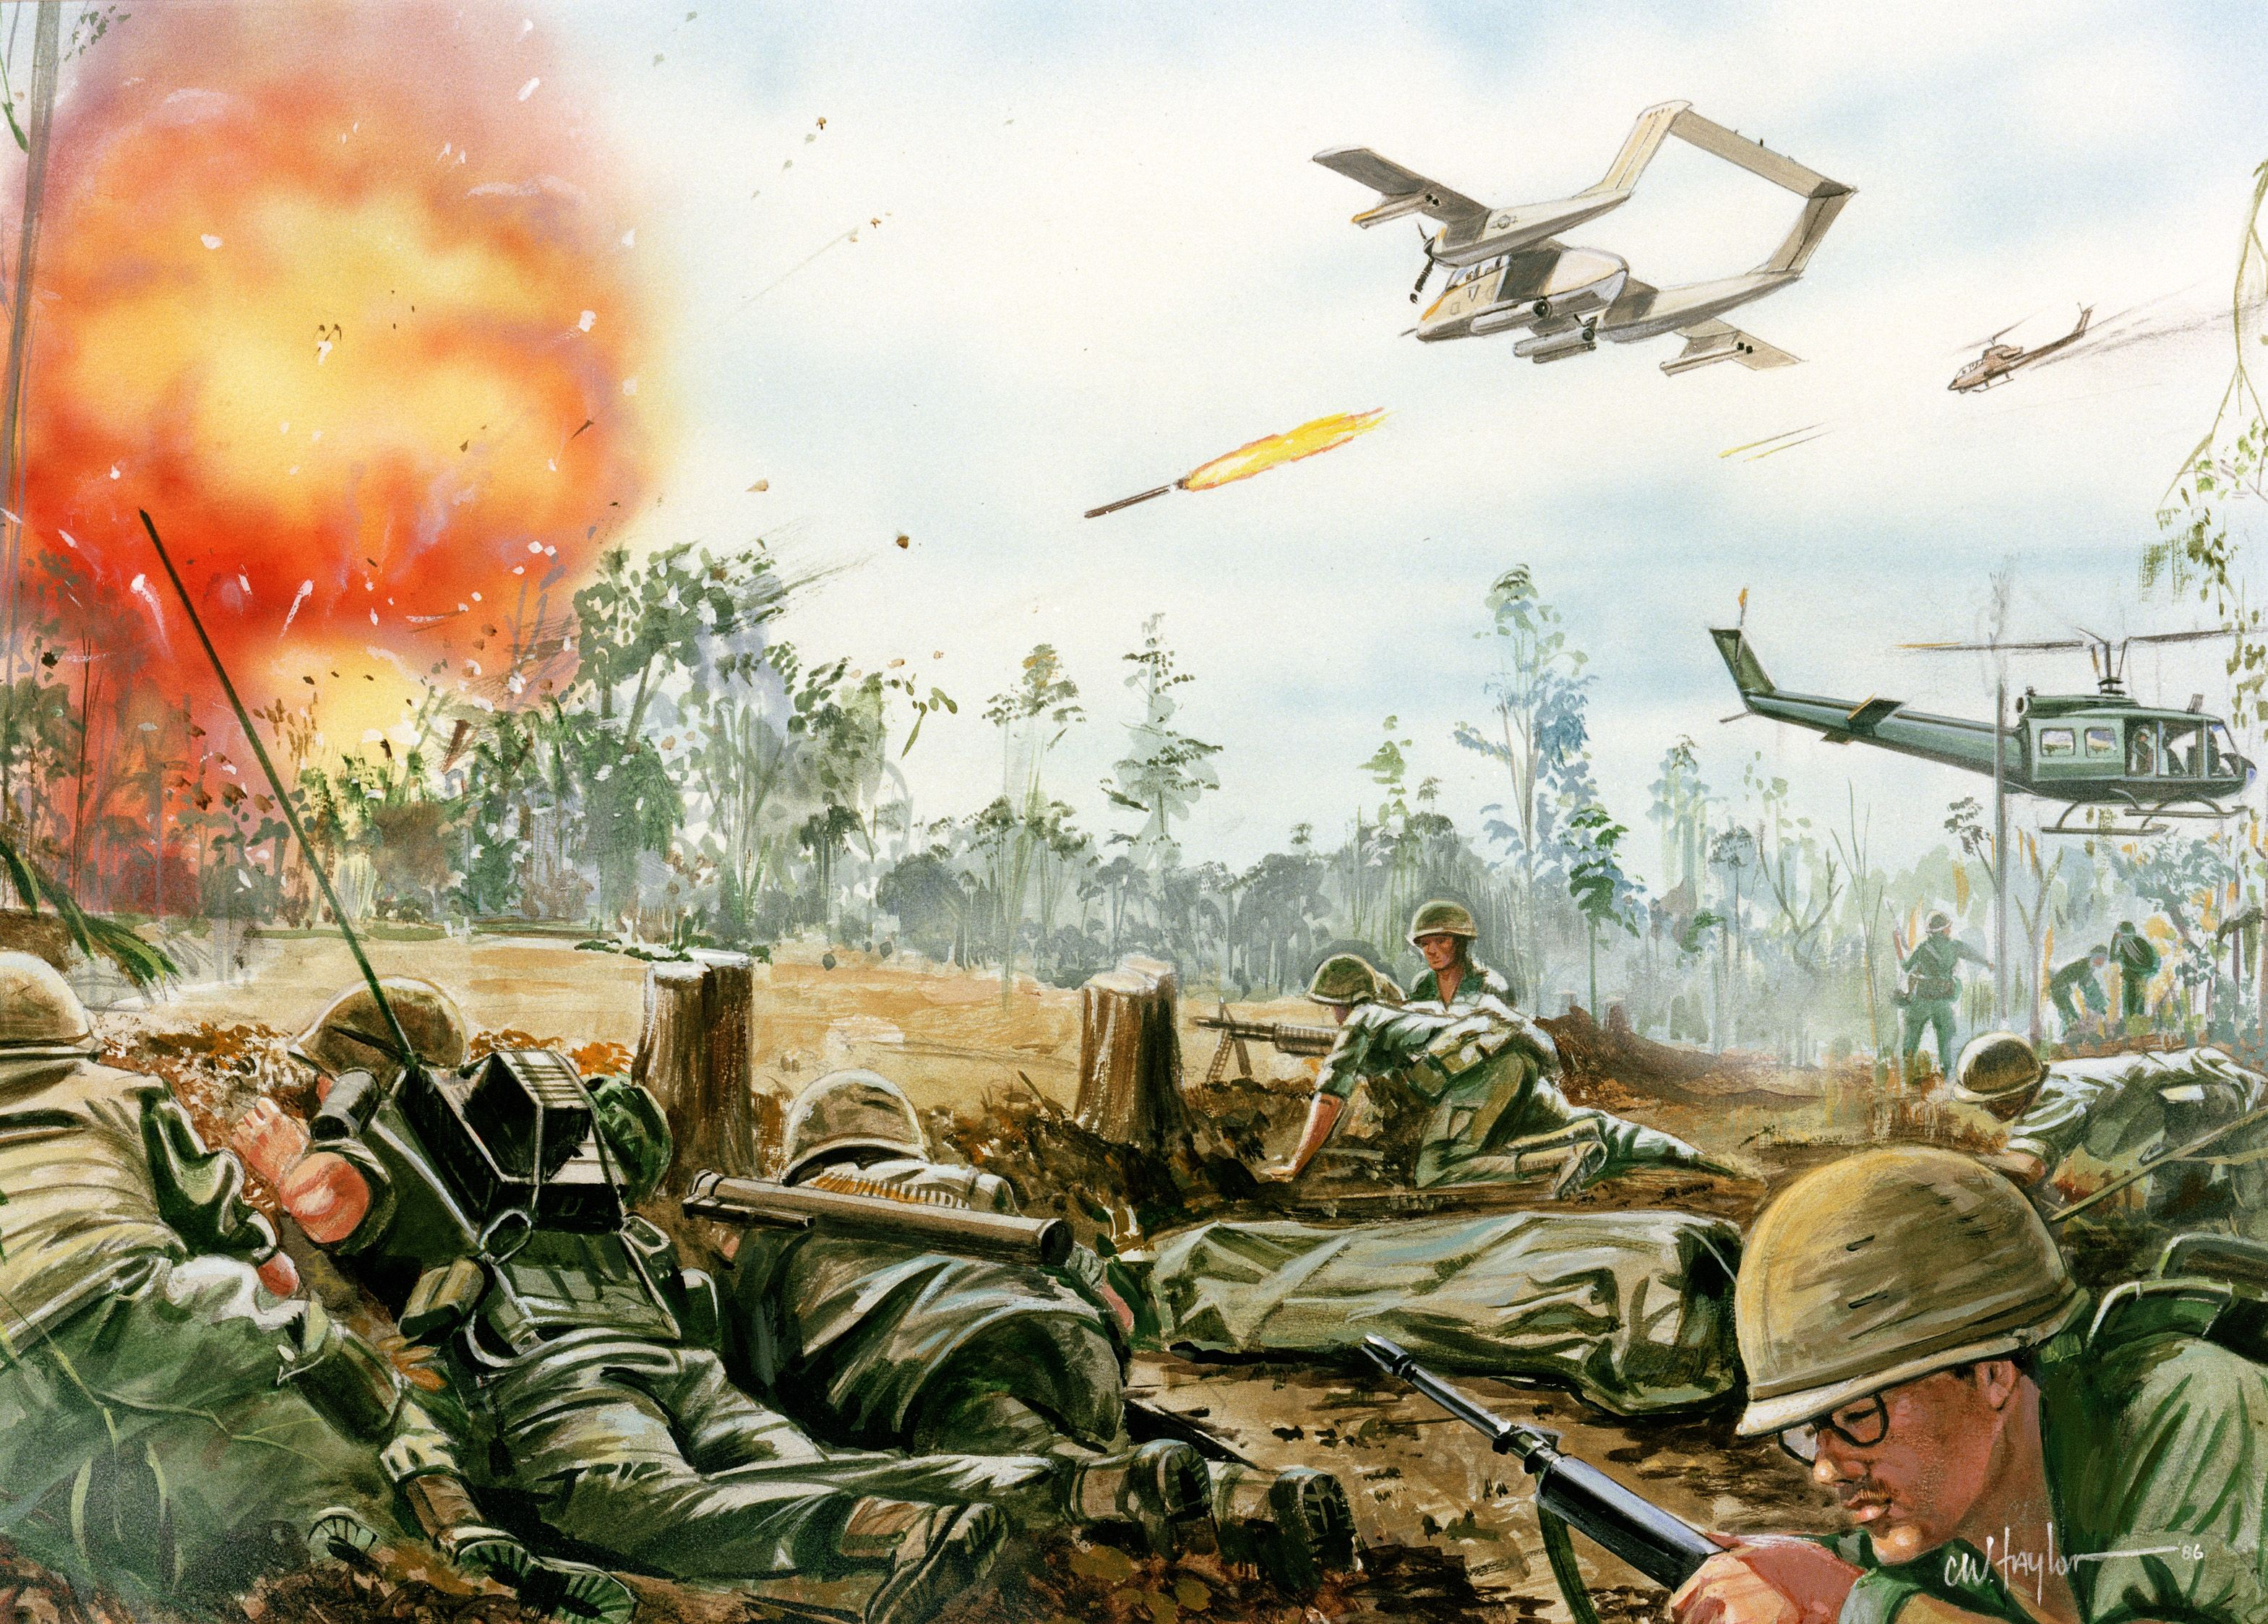 Arte Vietnam English Military Battle Wallpaper Korea Vietnam Vietnam Vietnam